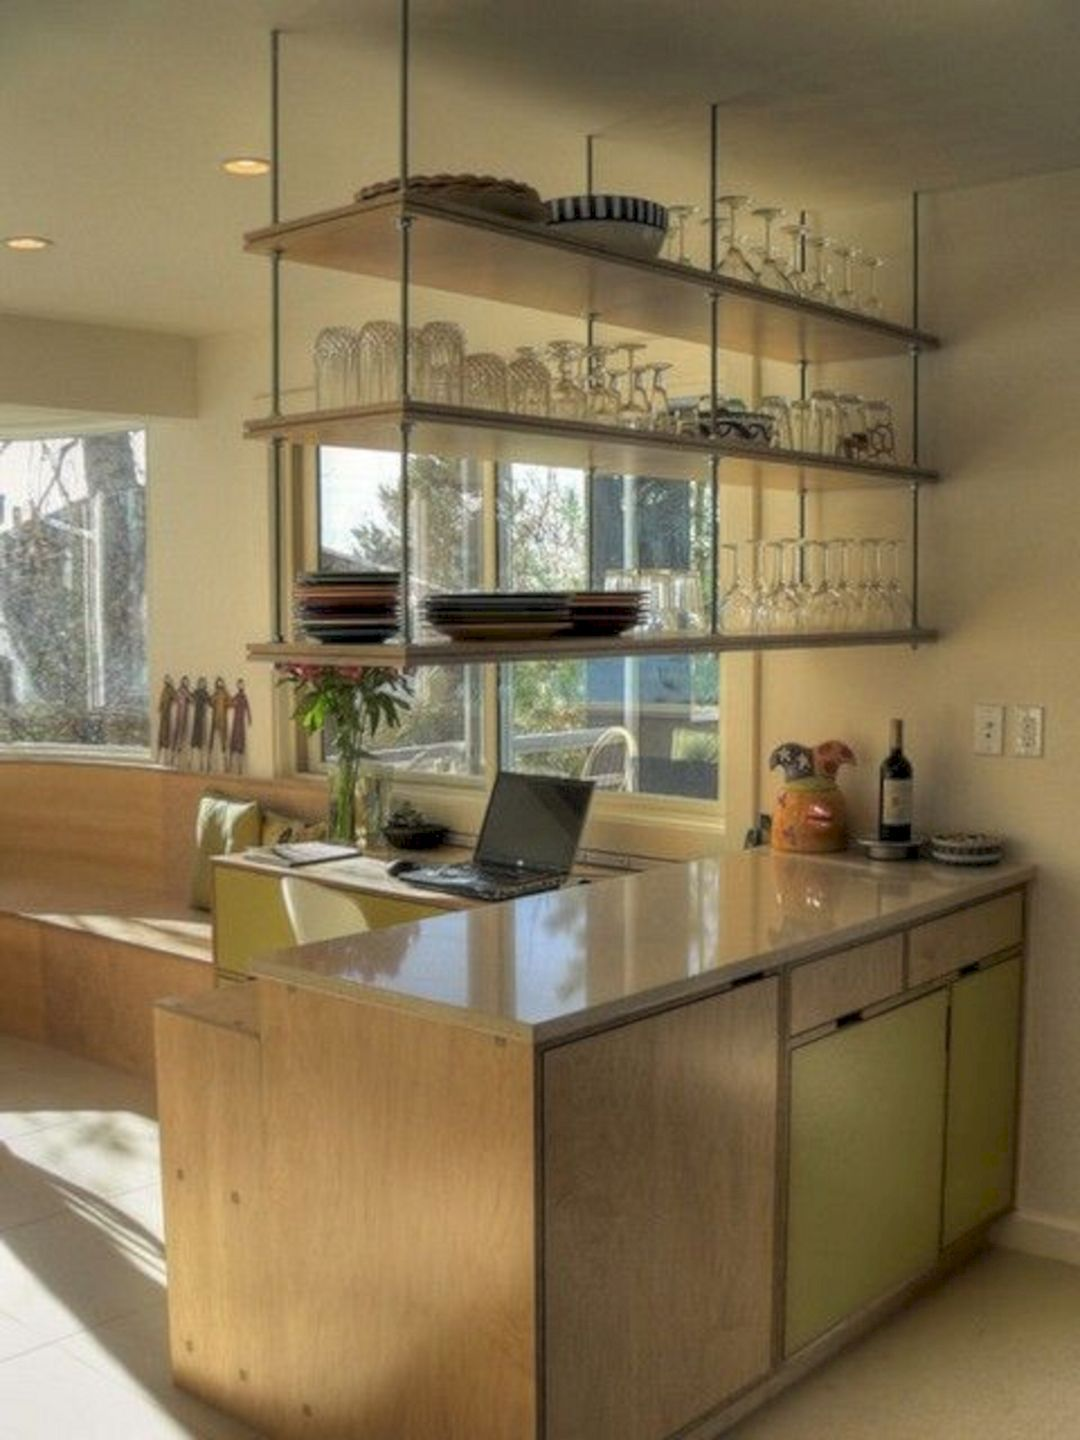 Kitchen Cabinet Hanging 35 43 Marvelous Kitchen Cabinets Hanging From Ceiling For